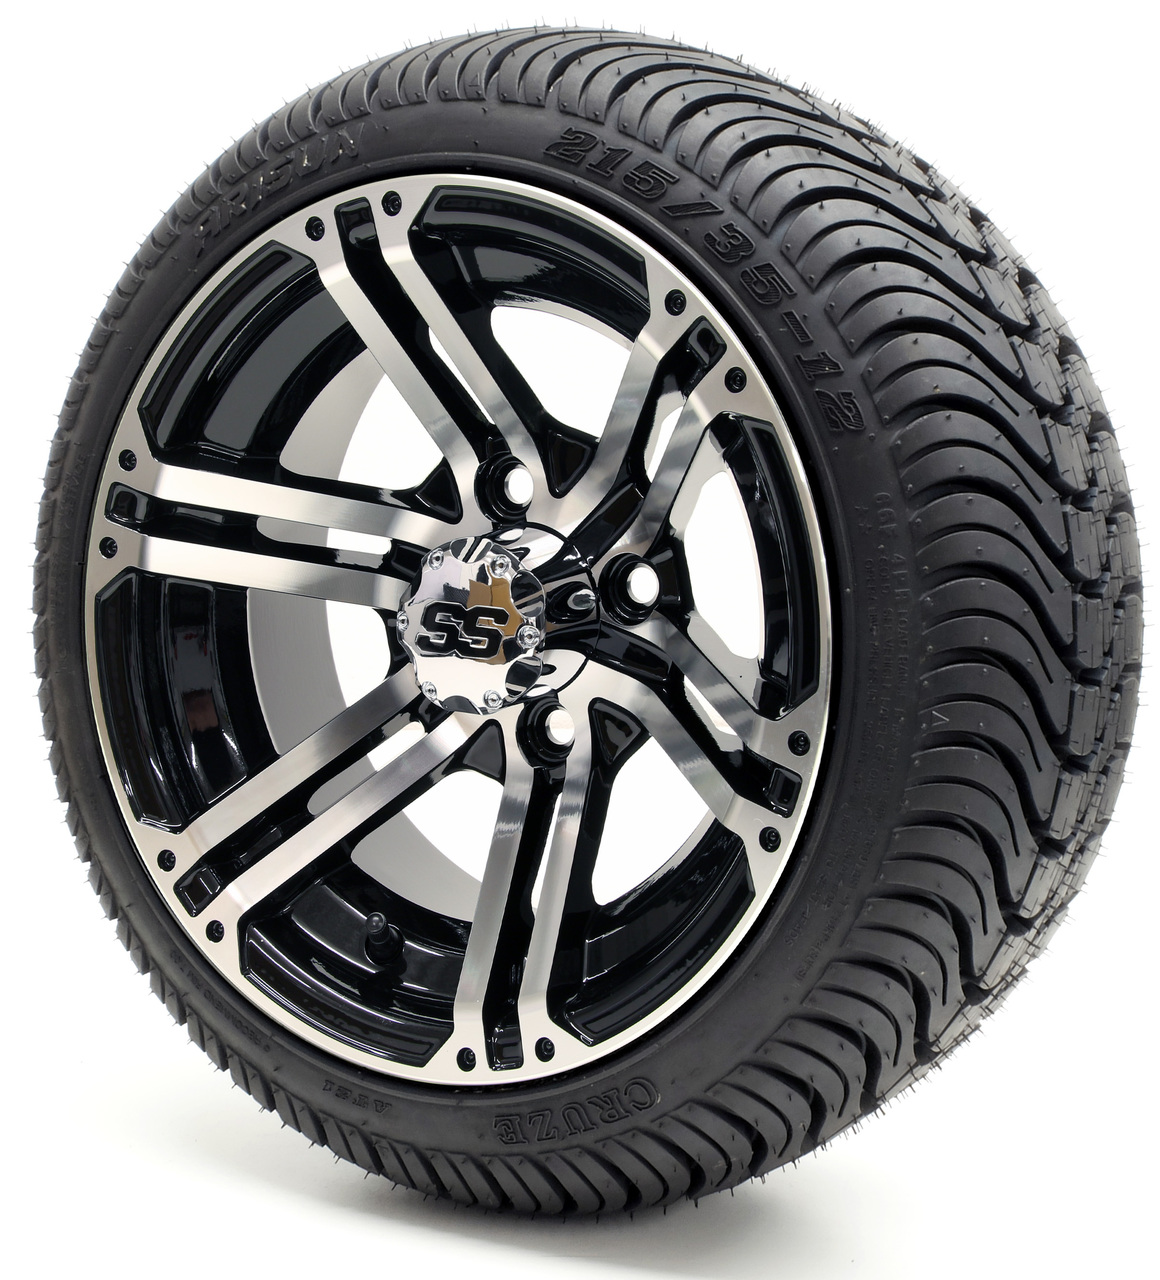 Gtw Specter Machine Black Wheels With Low Protire Options Combo Golf Cart King